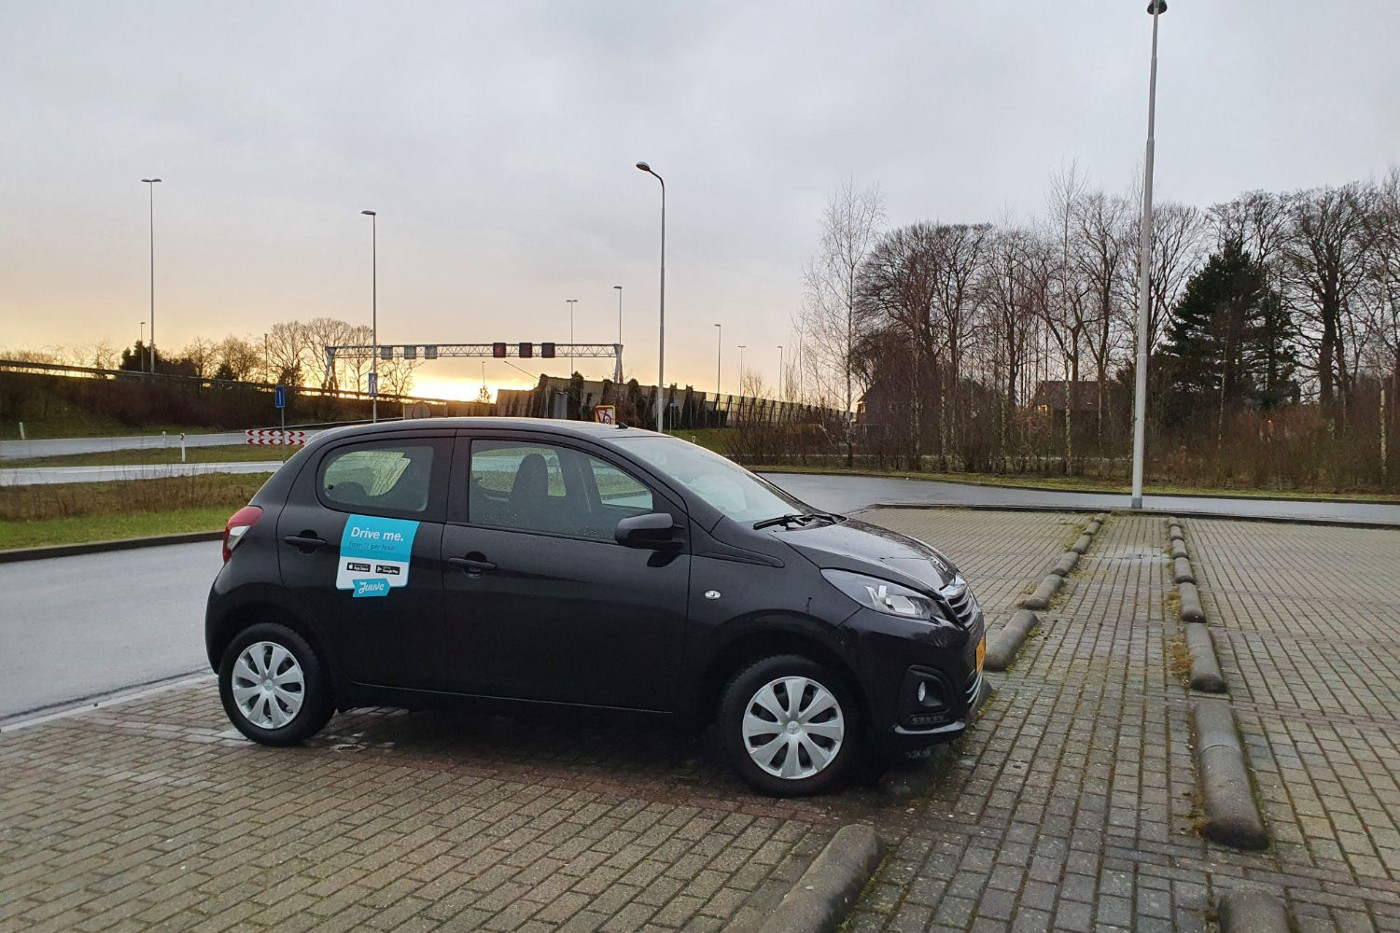 Photo of a Peugeot 108 parked in a parking lot next to a motorway. It has a sticker on it that says Juuve, the name of the rental company.